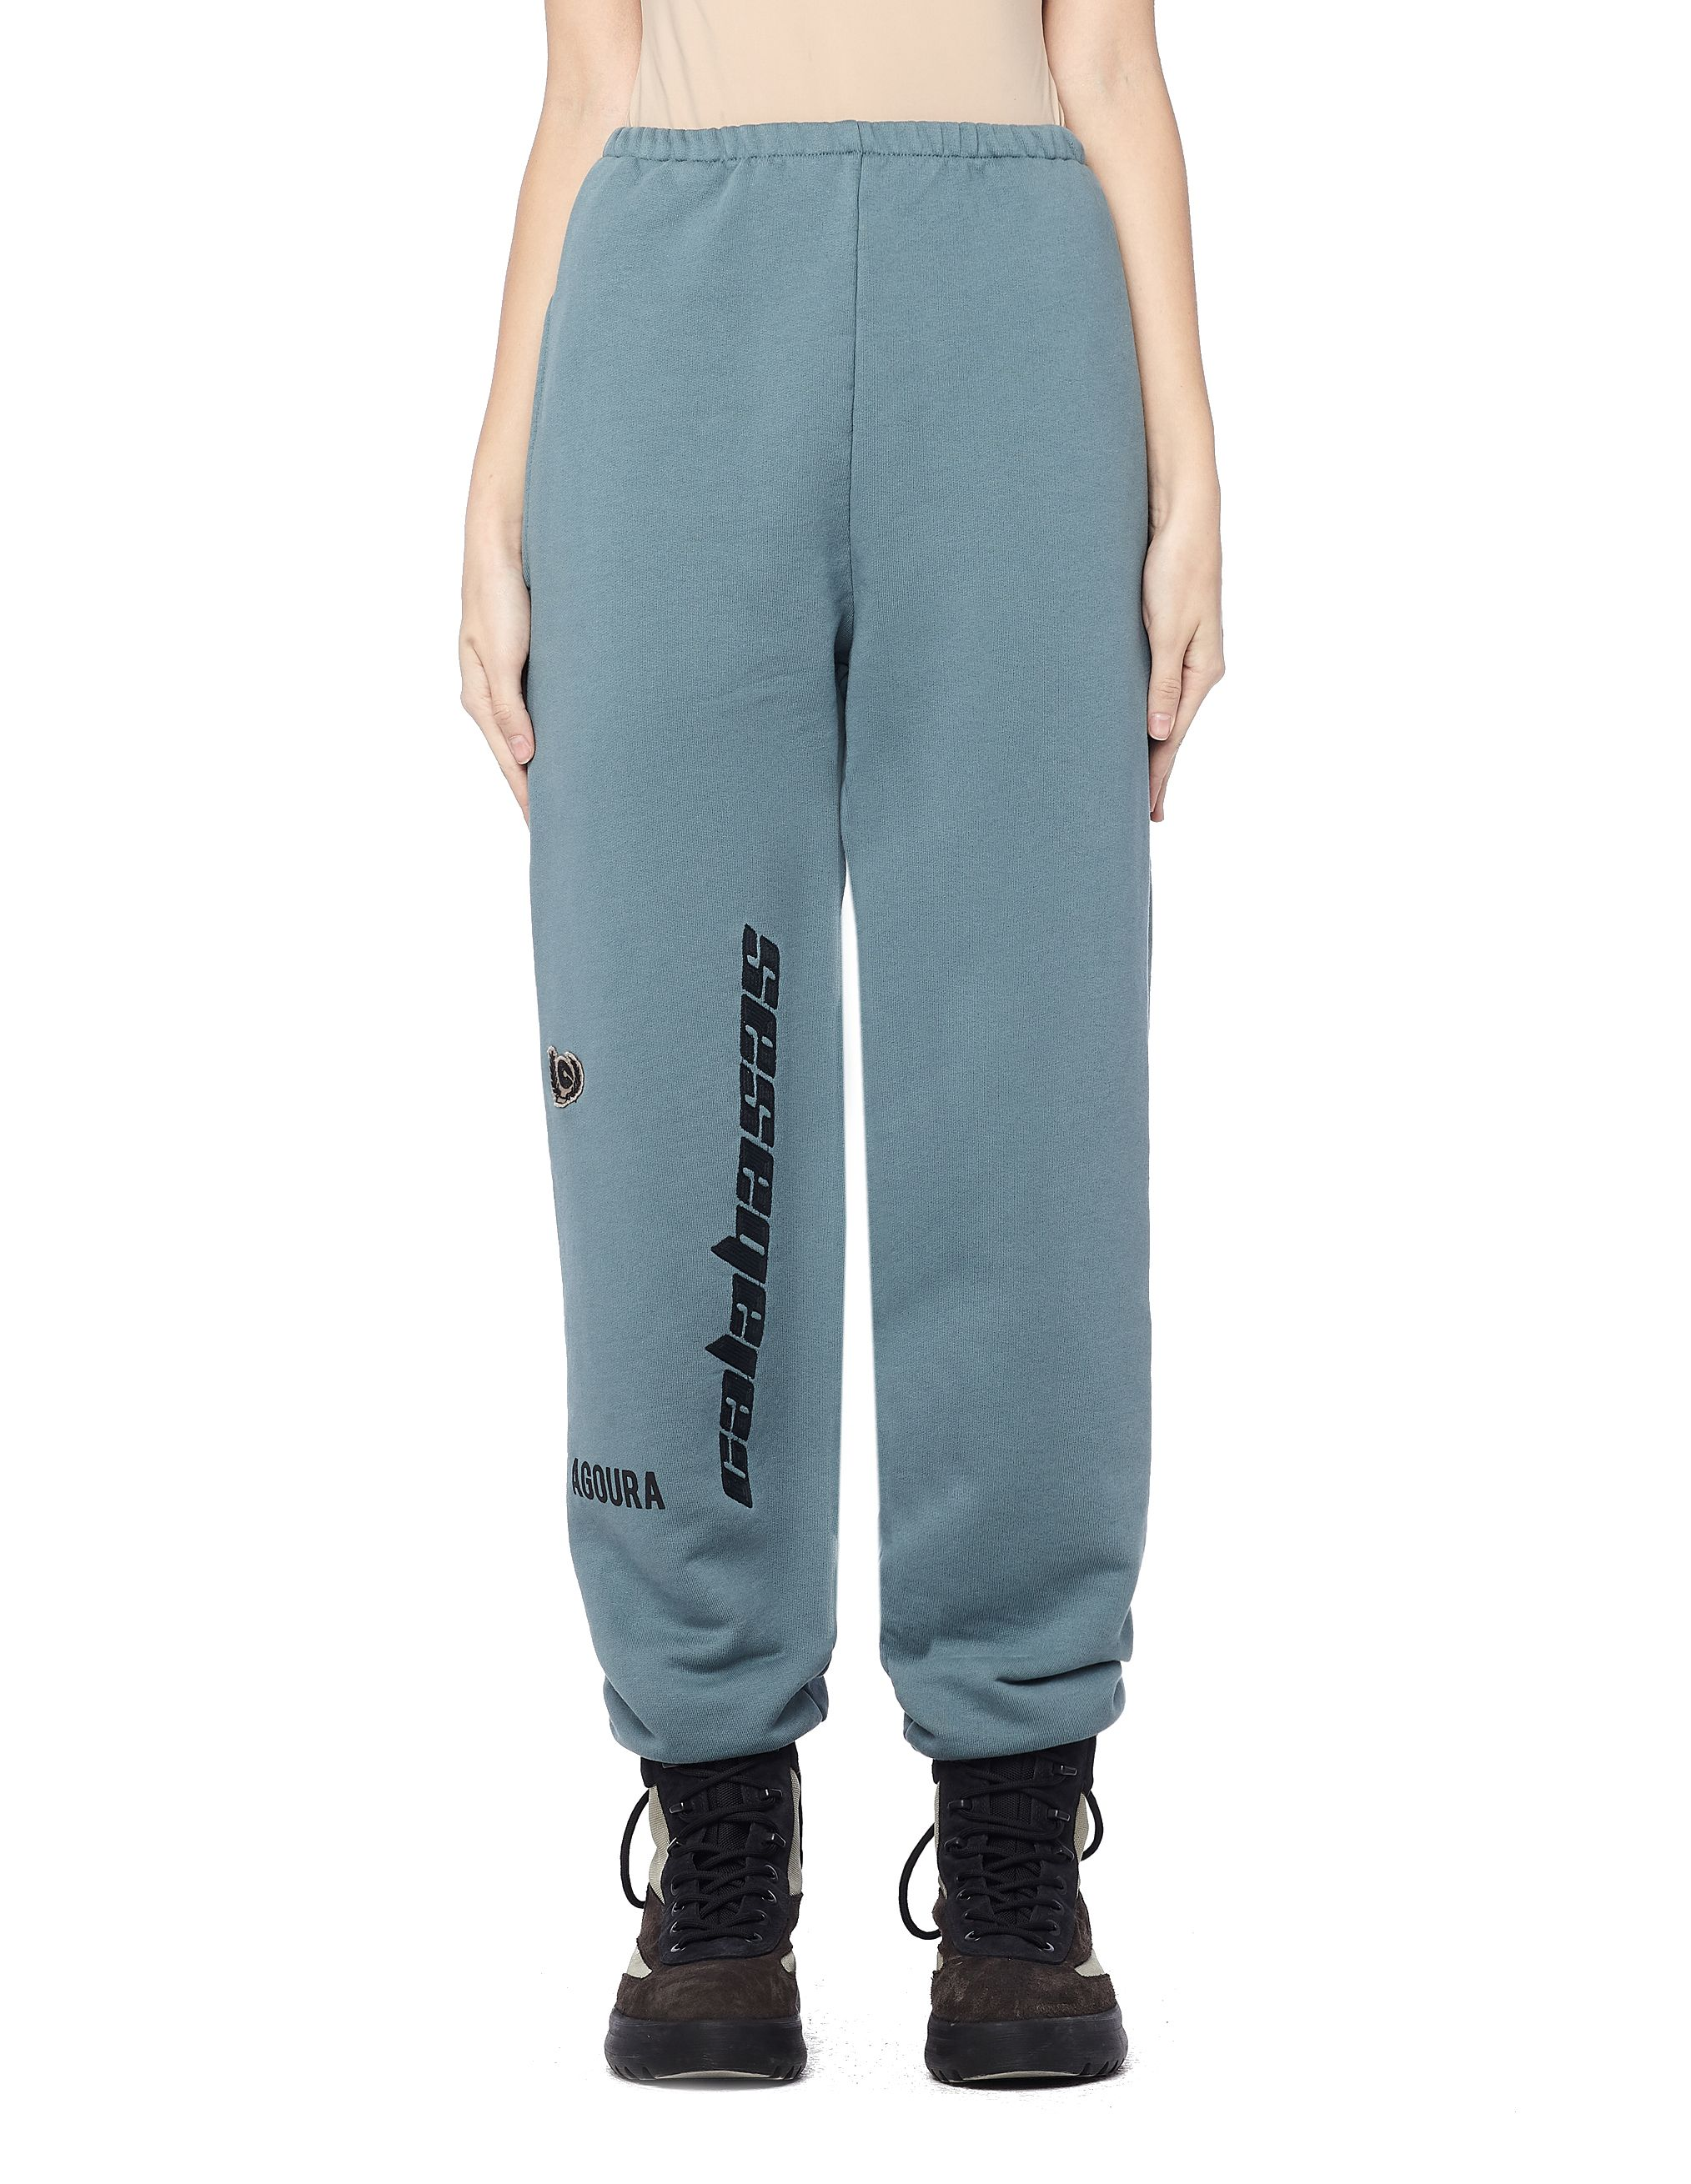 a7274dd11 YEEZY CALABASAS EMBROIDERED SWEATPANTS. #yeezy #cloth # | Yeezy ...